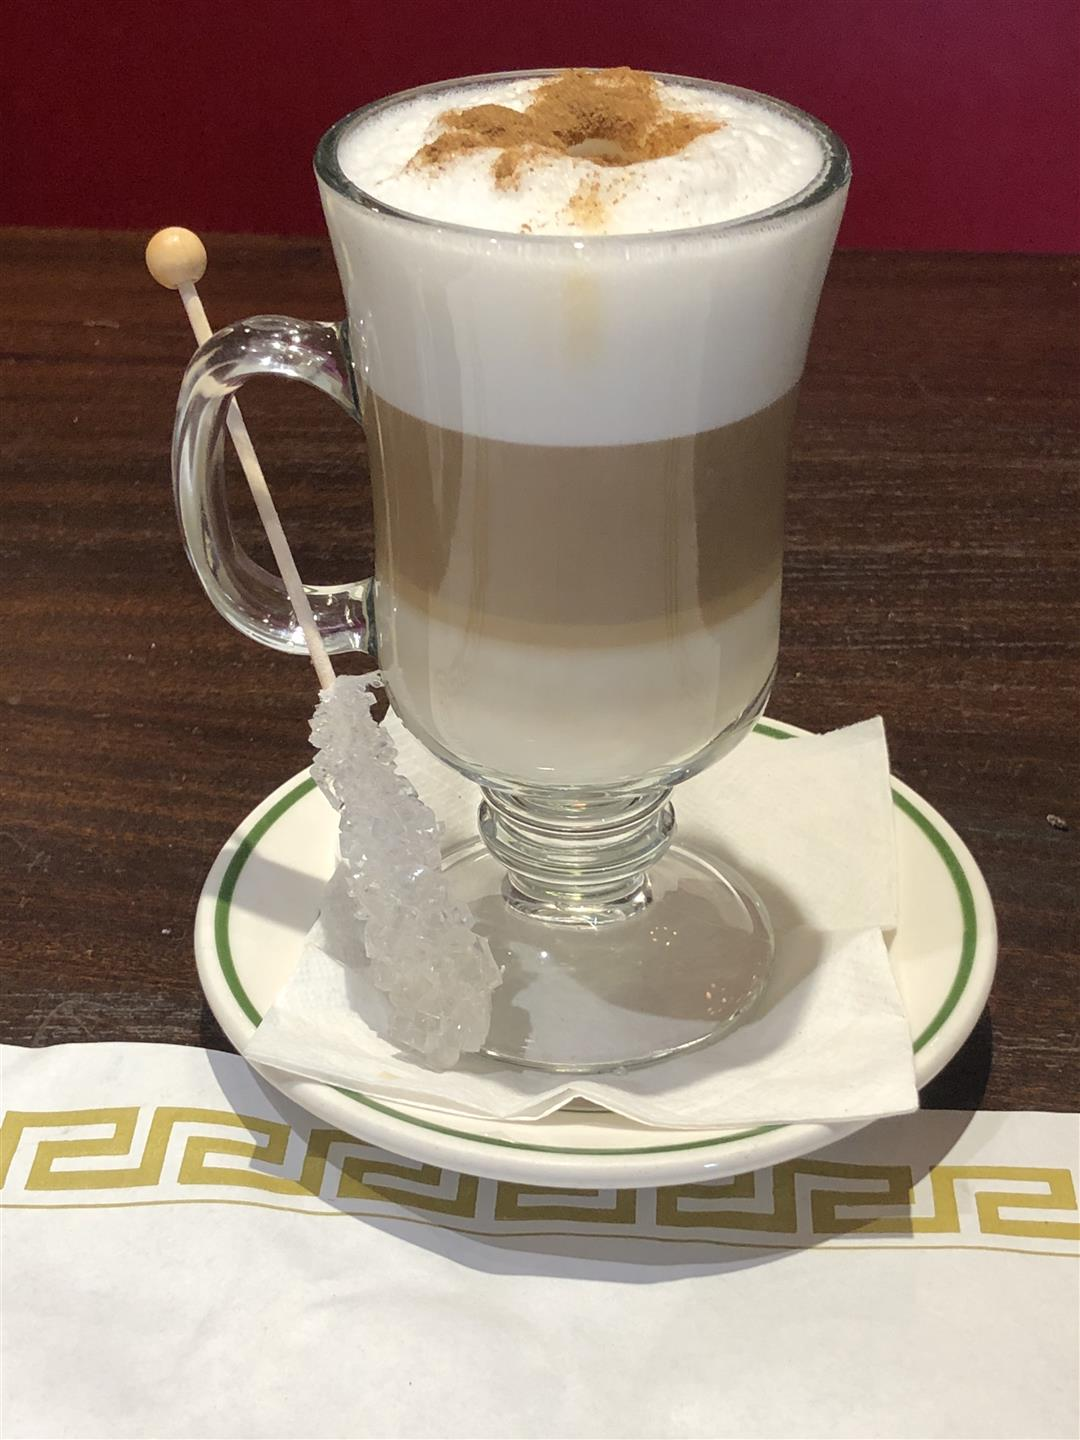 cappuccino with a sugar stick on the side